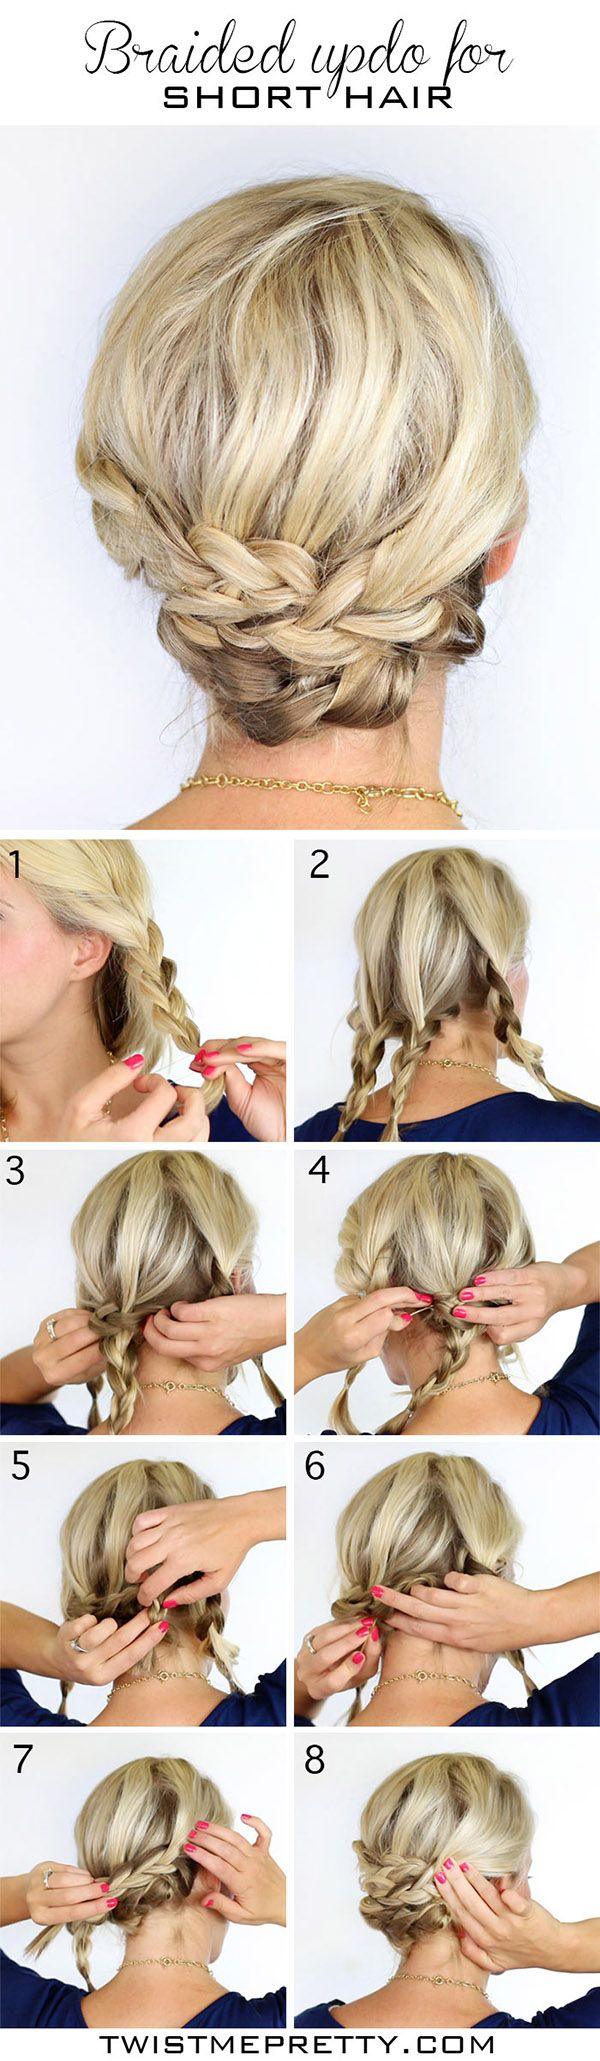 diy wedding hairstyles with tutorials to try on your own formal